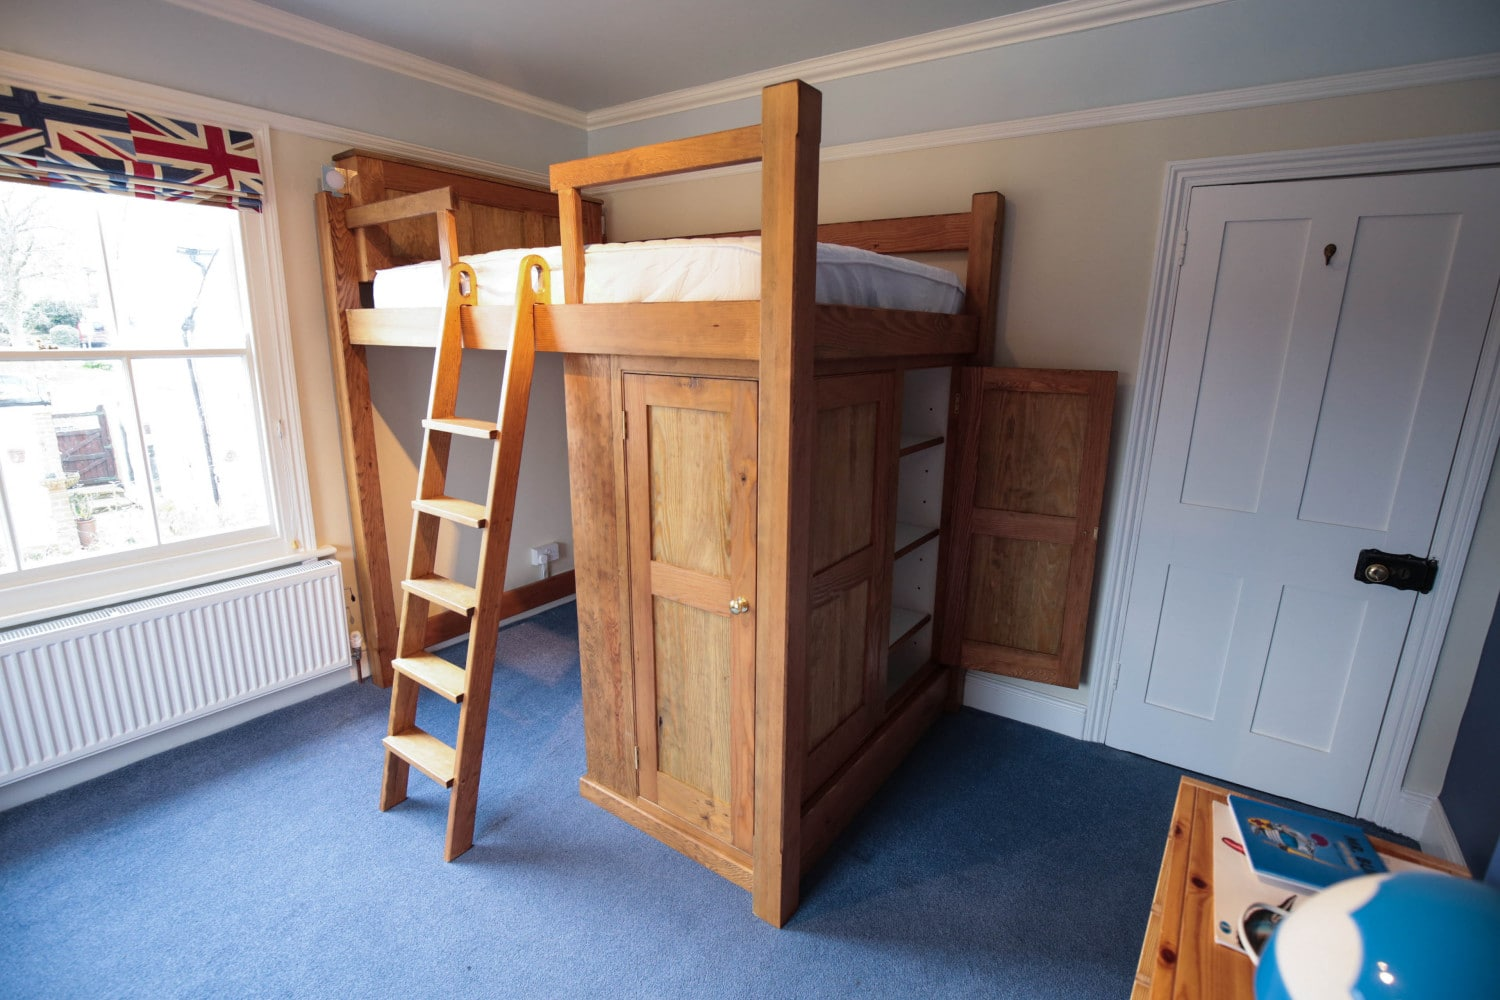 Bespoke Cabin Bed and Desk, Joiners Hertfordshire